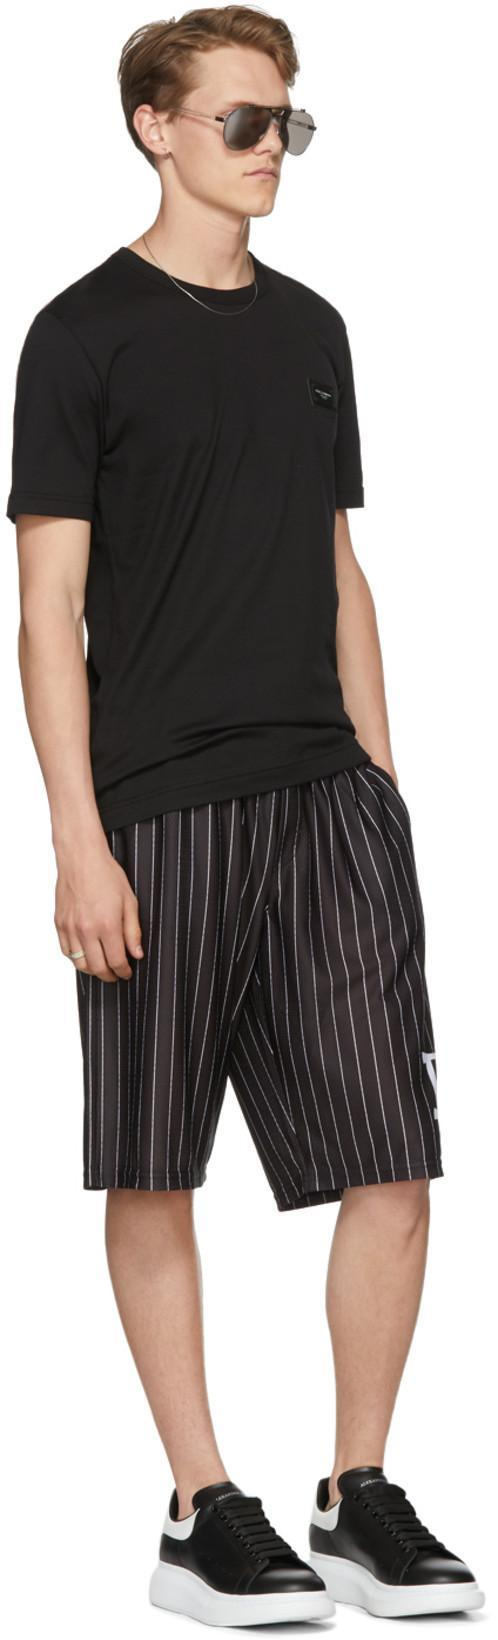 d92a87489f3c DOLCE   GABBANA Dolce And Gabbana Black And White Striped Dg Basketball  Shorts in Hnhbw Black